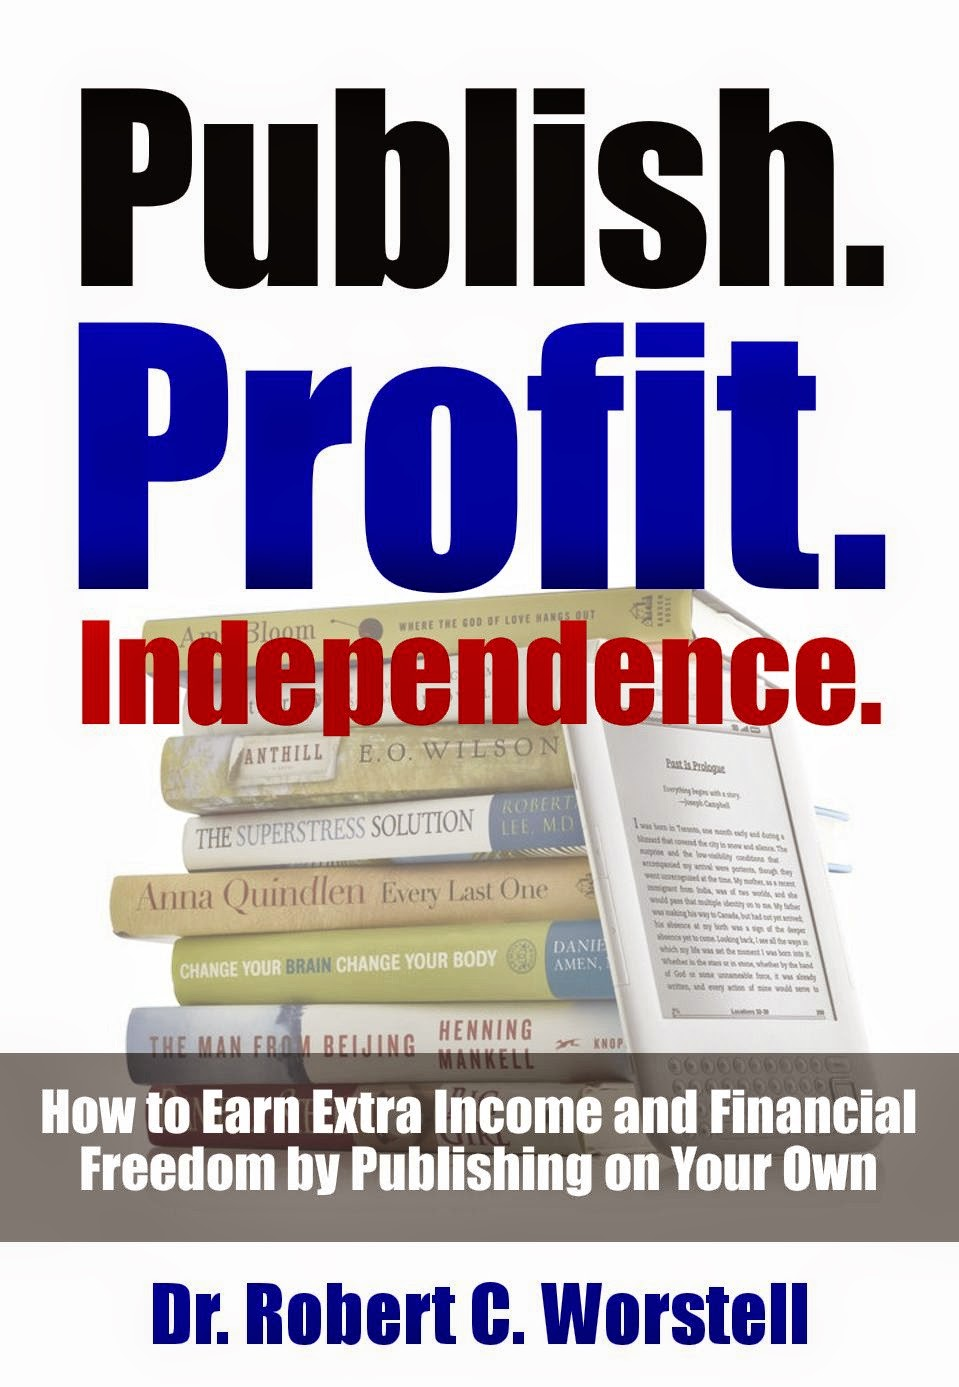 Home pubilshing business guide - earn extra income and financial freedom by publishing on your own.